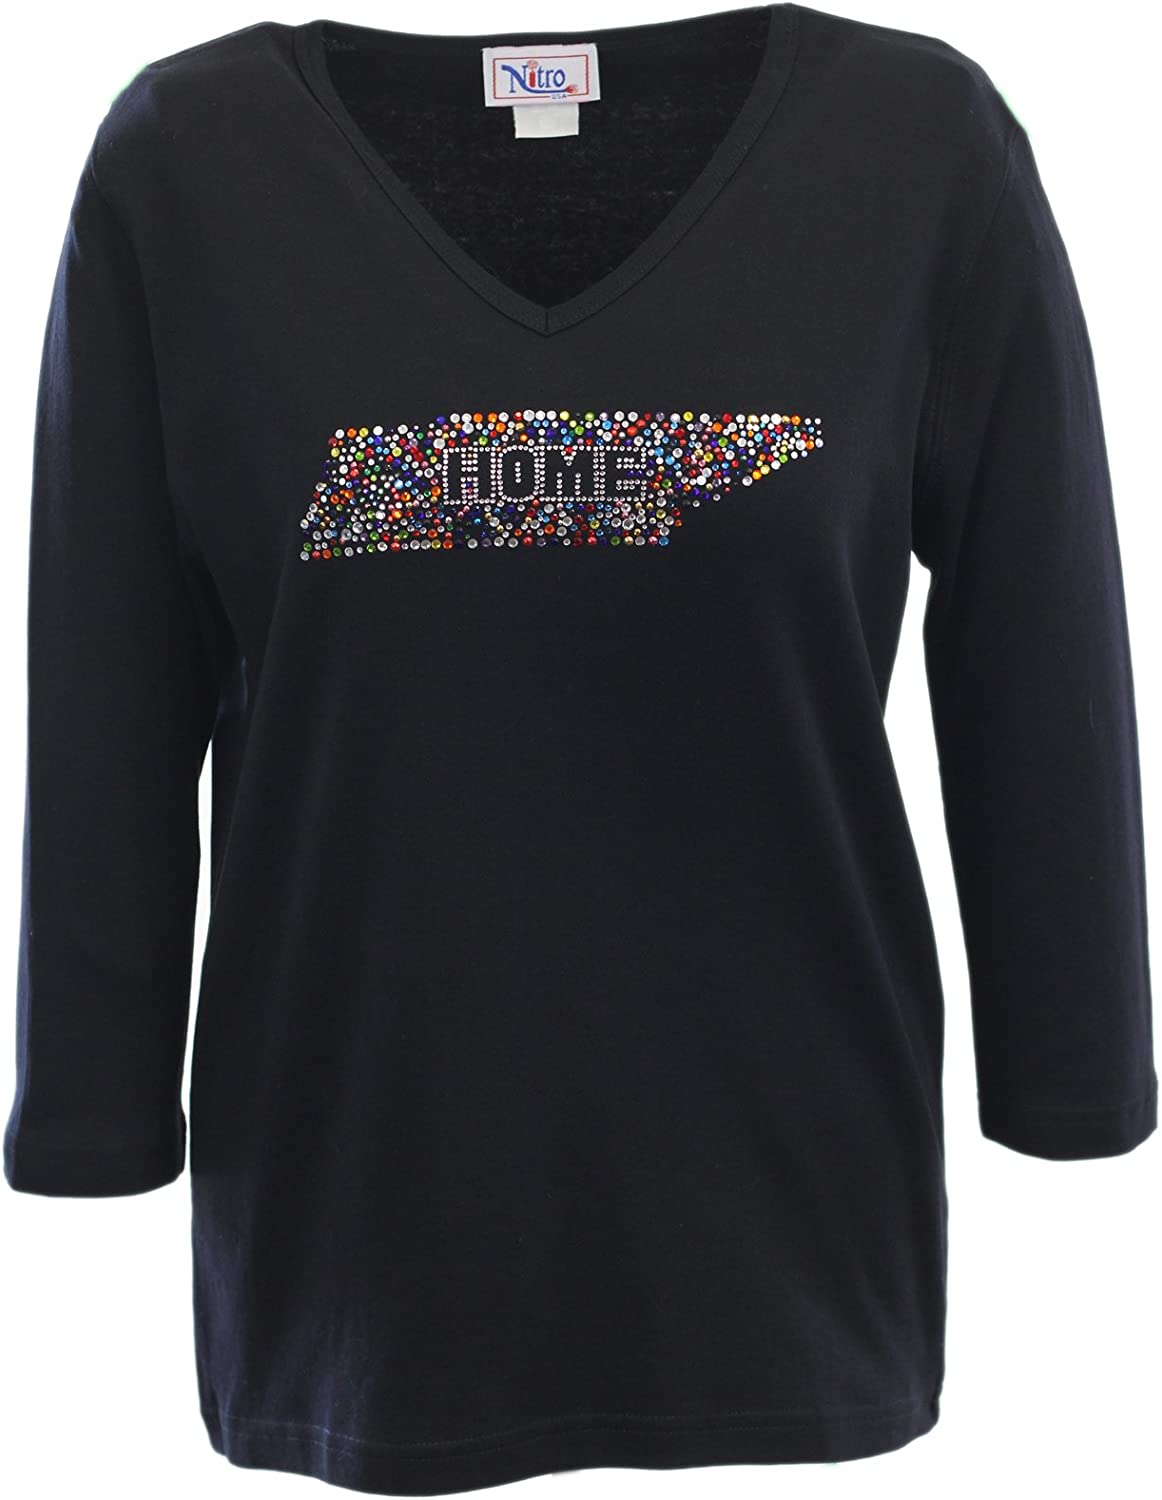 Nitro USA NCAA Women's V-Neck 3/4 Sleeve Top with Bling State Home Confetti